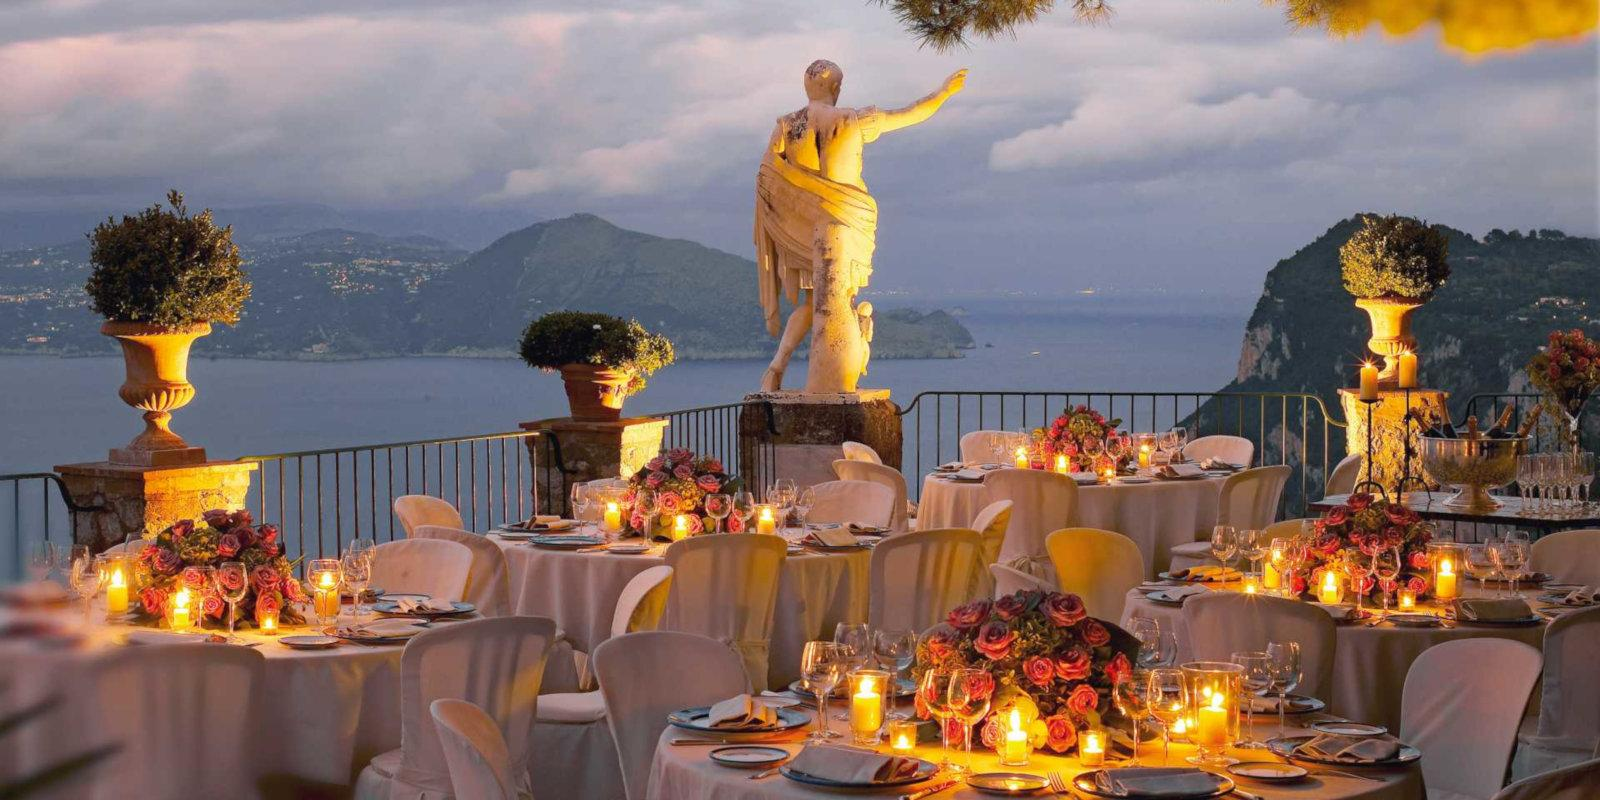 Hotel Caesar Augustus is a stunning and romantic, gay friendly hotel on the island of Capri